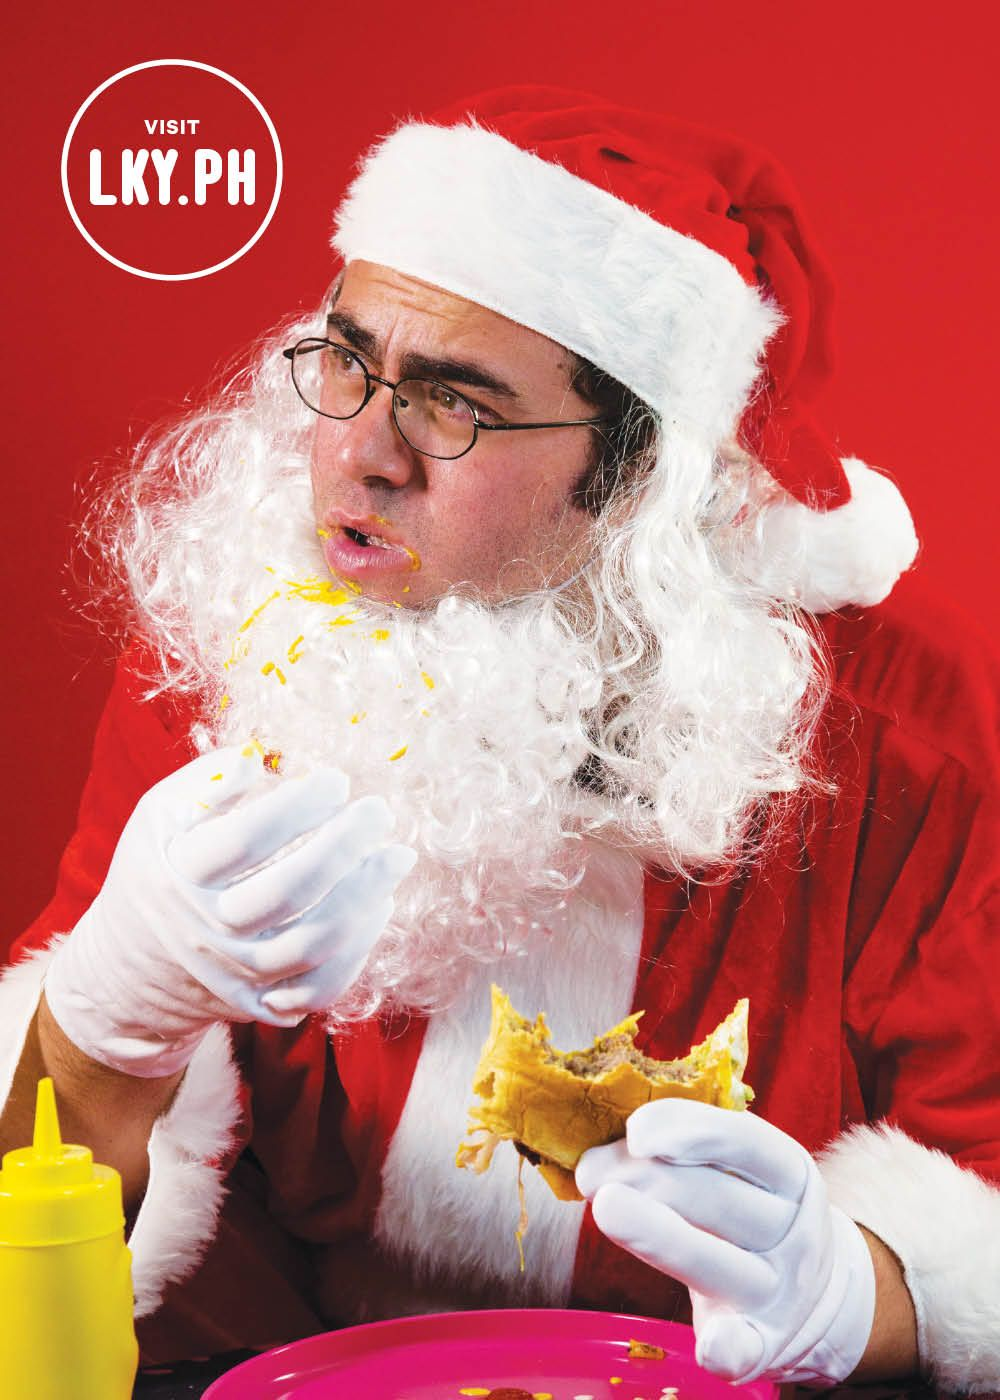 The Lucky Peach is celebrating the holiday with a HOLIDAY READER promo which means that now thru Cyber Monday, the first issue in your subscription will come bundled with their exclusive Holiday Reader, which comes chock full of recipes, stories, and this picture of @20x200 artist Jason Polan eating a hamburger.